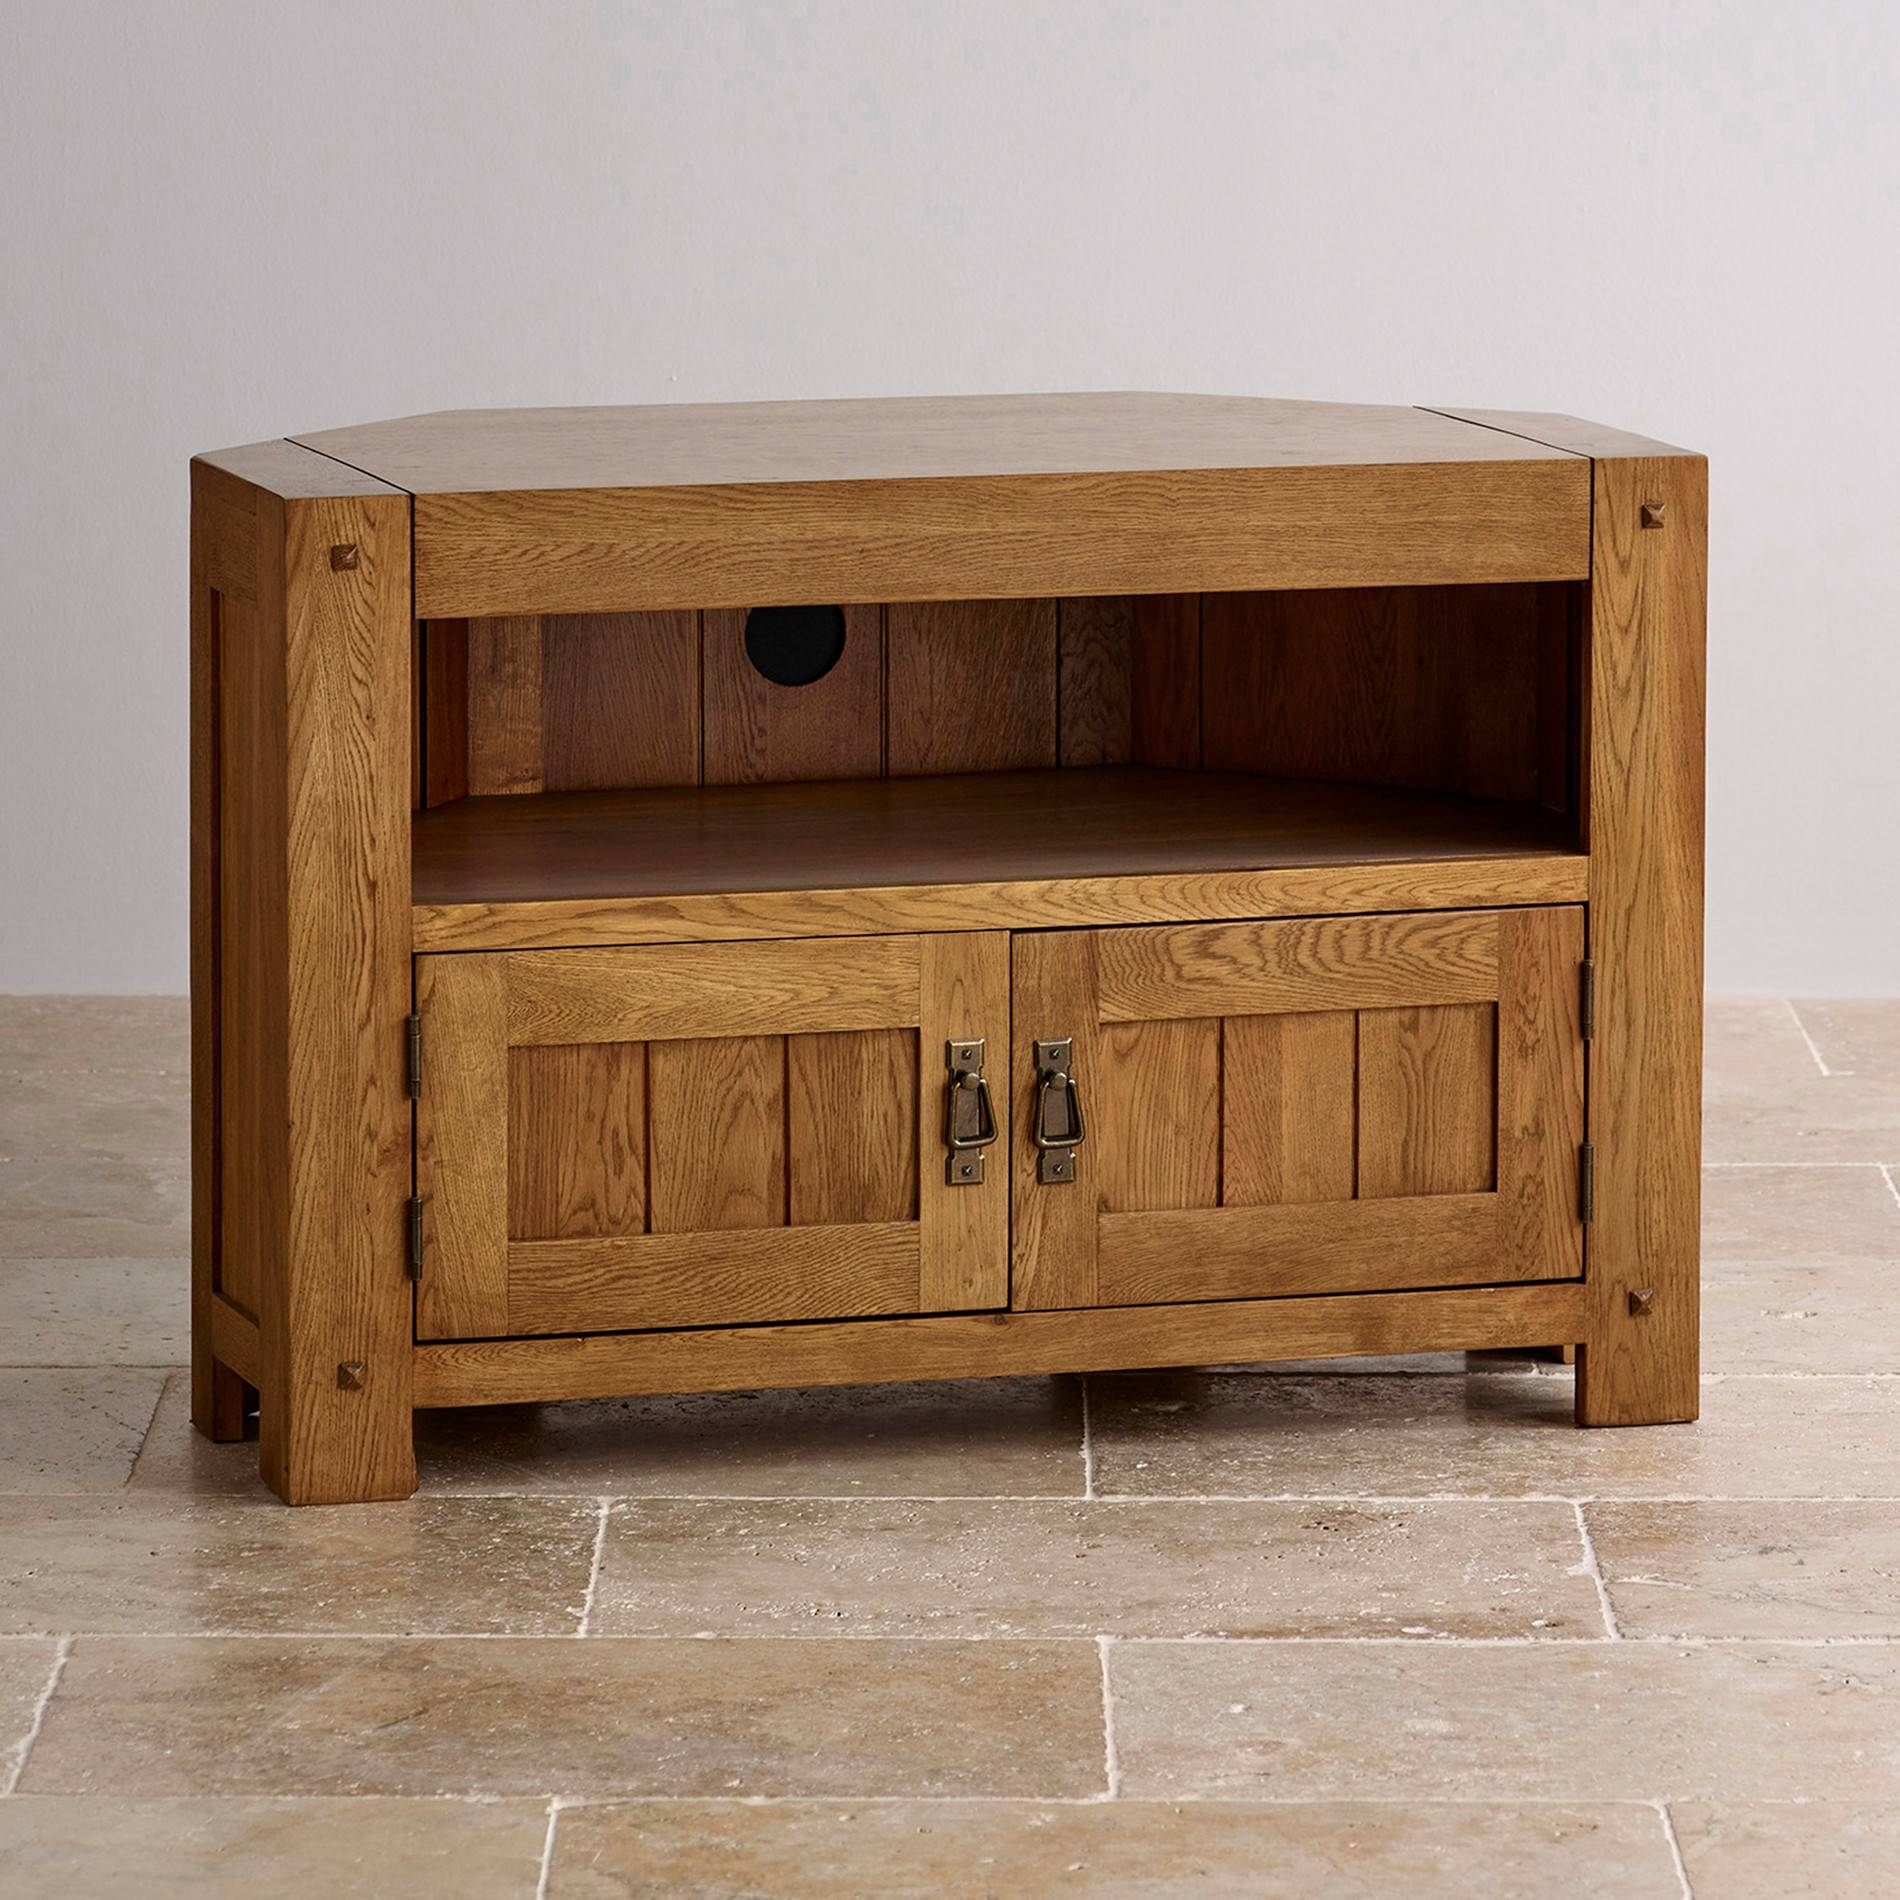 Quercus Corner Tv Cabinet In Rustic Oak | Oak Furniture Land pertaining to Corner Wooden Tv Cabinets (Image 11 of 15)